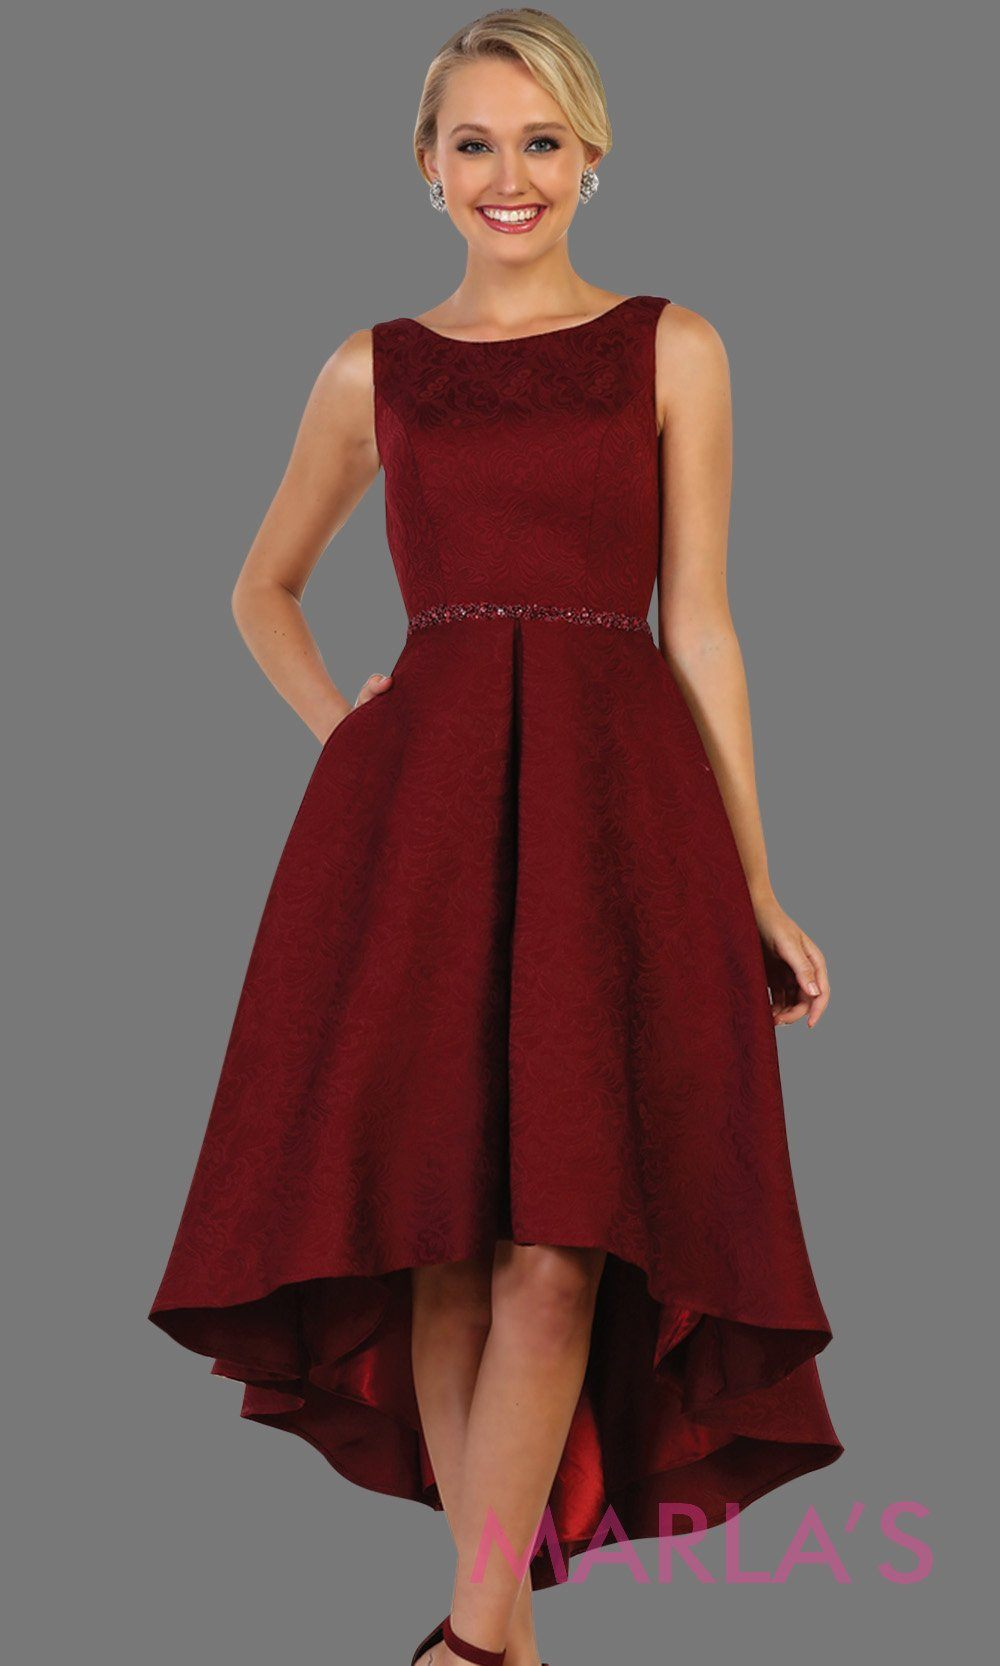 High low burgundy high neck dress with open back. Perfect for graduation, grade 8 grad, red hi lo prom dress, wedding guest dress, formal party gown, gala, semi formal, engagement dress. Available in plus sizes.